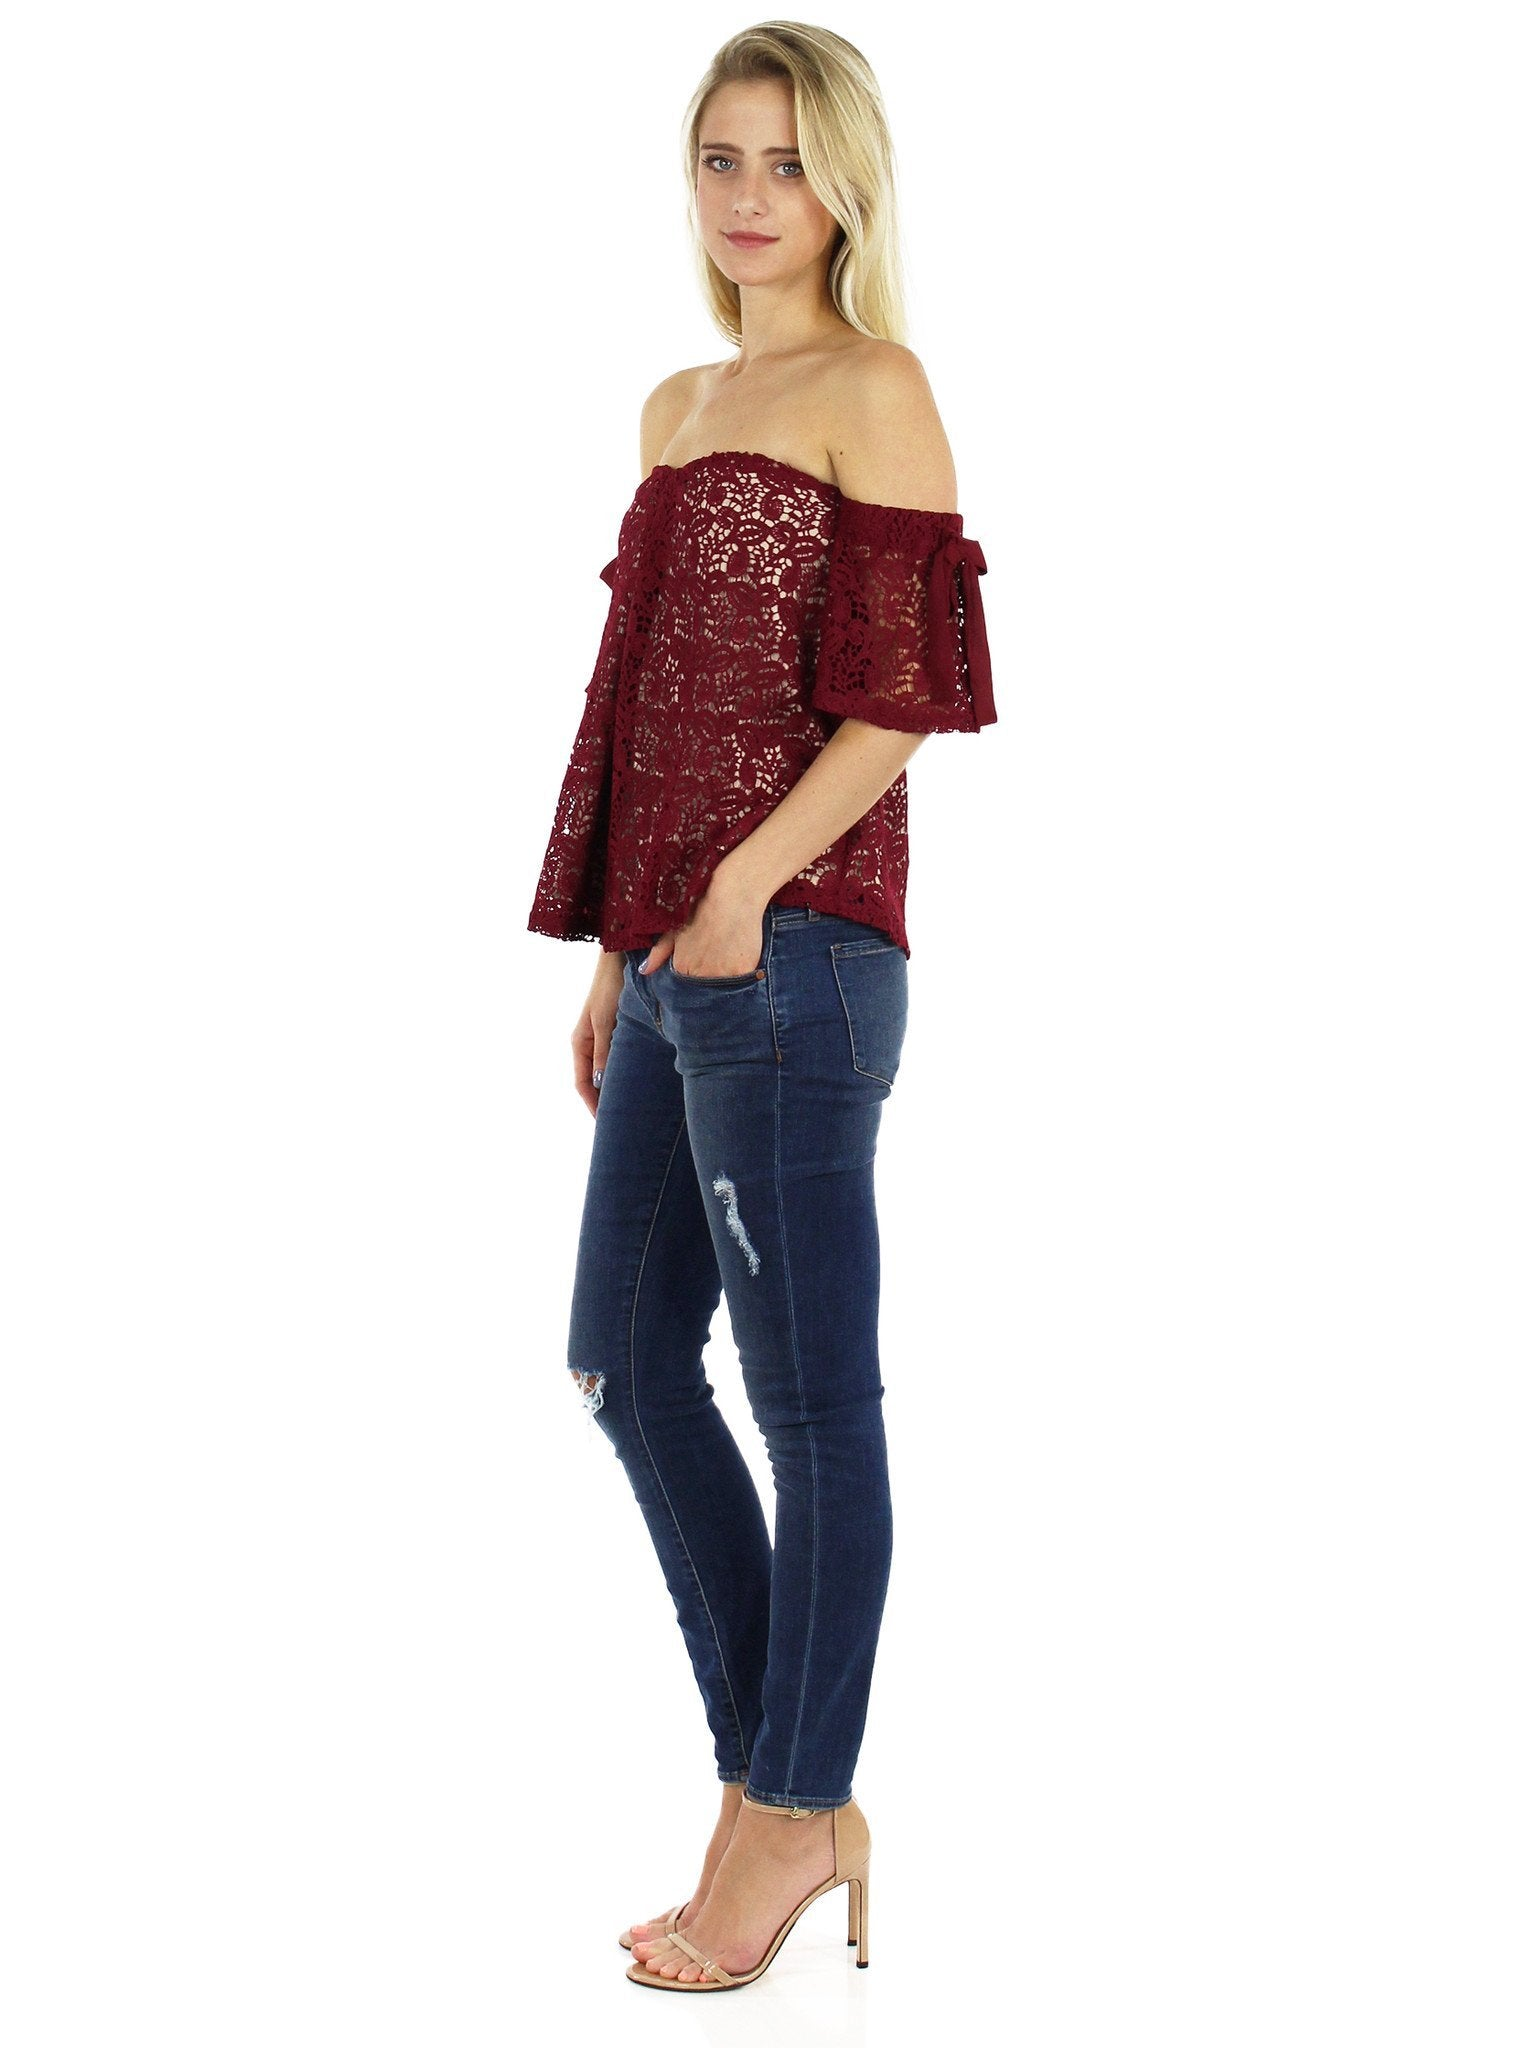 Women outfit in a top rental from Moon River called Off Shoulder Lace Top